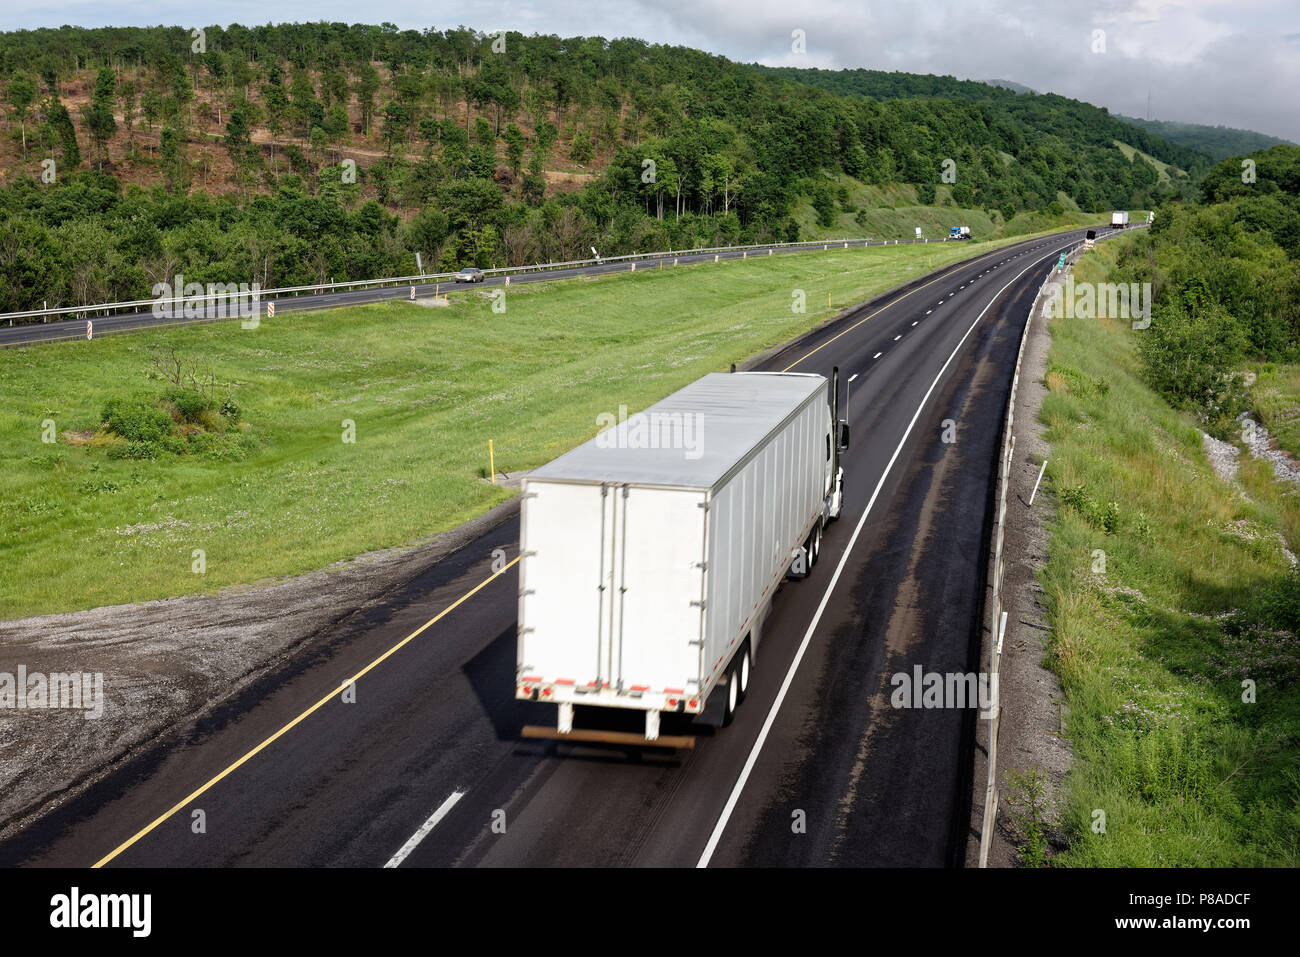 Trucks moving down interstate highway through scenic eastern mountains, tractor trailers in trucking industry hauling freight, some motion blur. - Stock Image